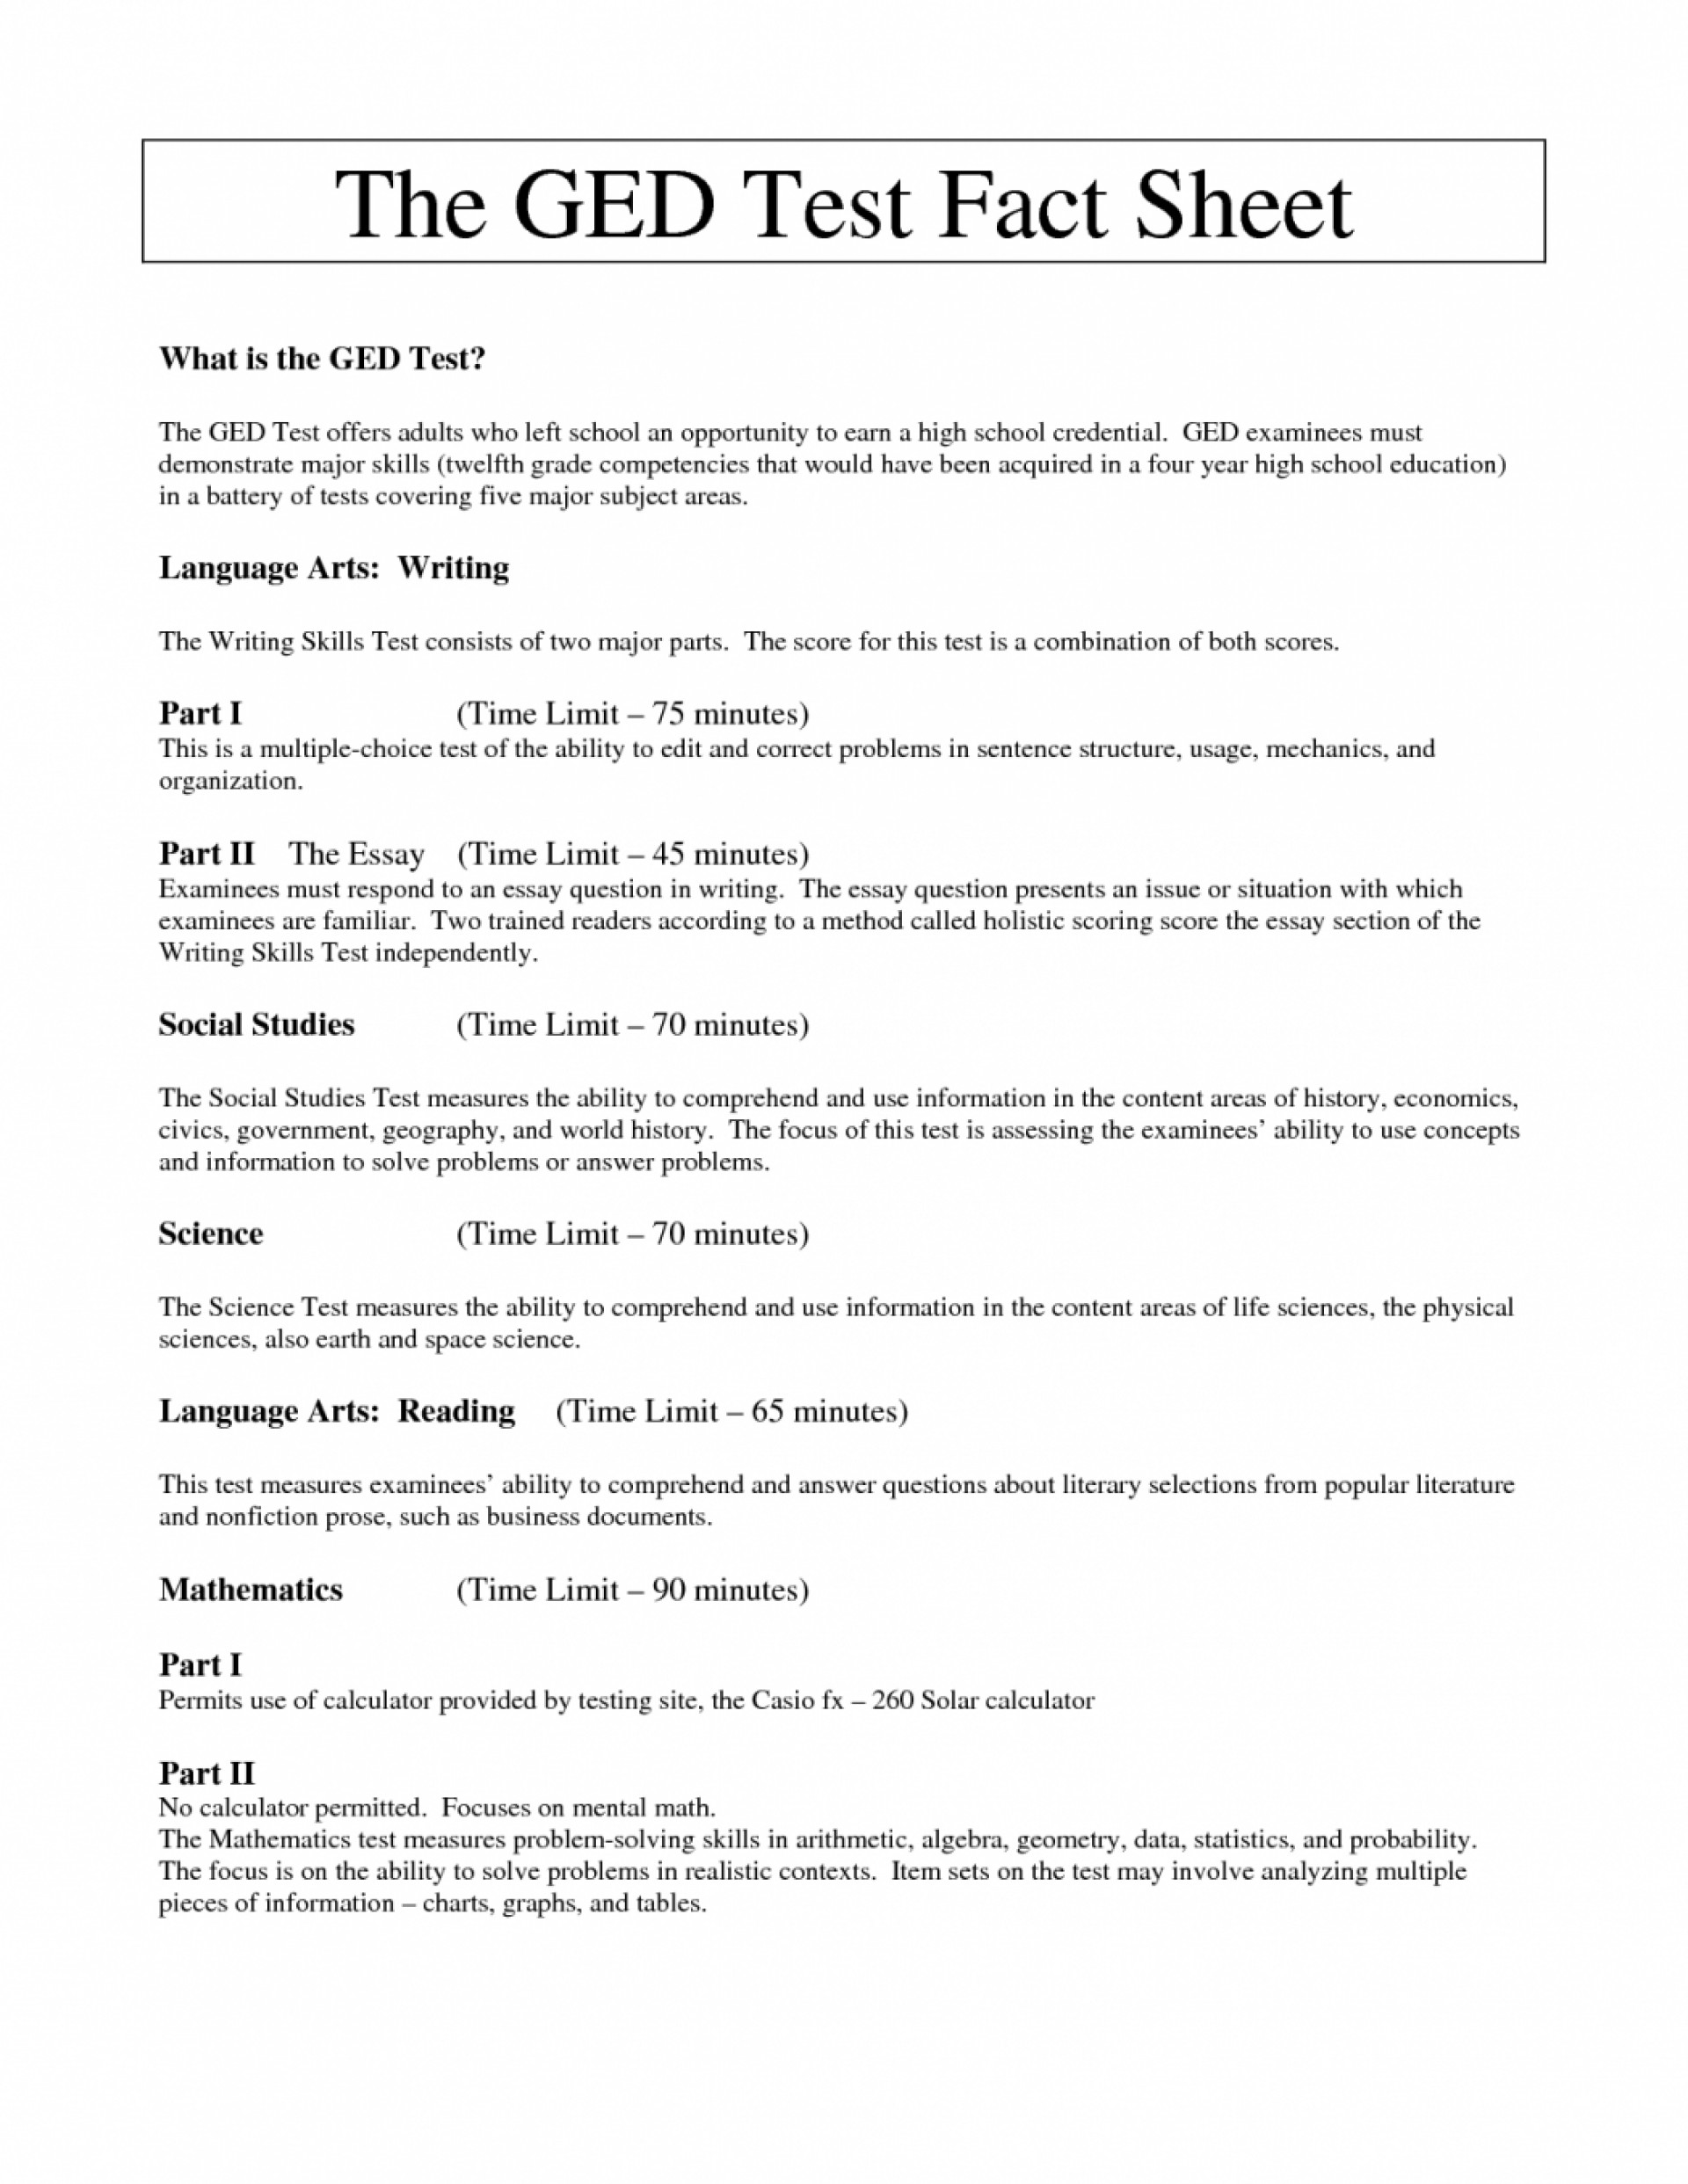 016 Ged Essay Examples Write My Online Free How To An For Test Com Writing Math Practice 1 Rubric Lesson Plans Samples Topics In Spanish Youtube Tips Template Excellent 2016 1920